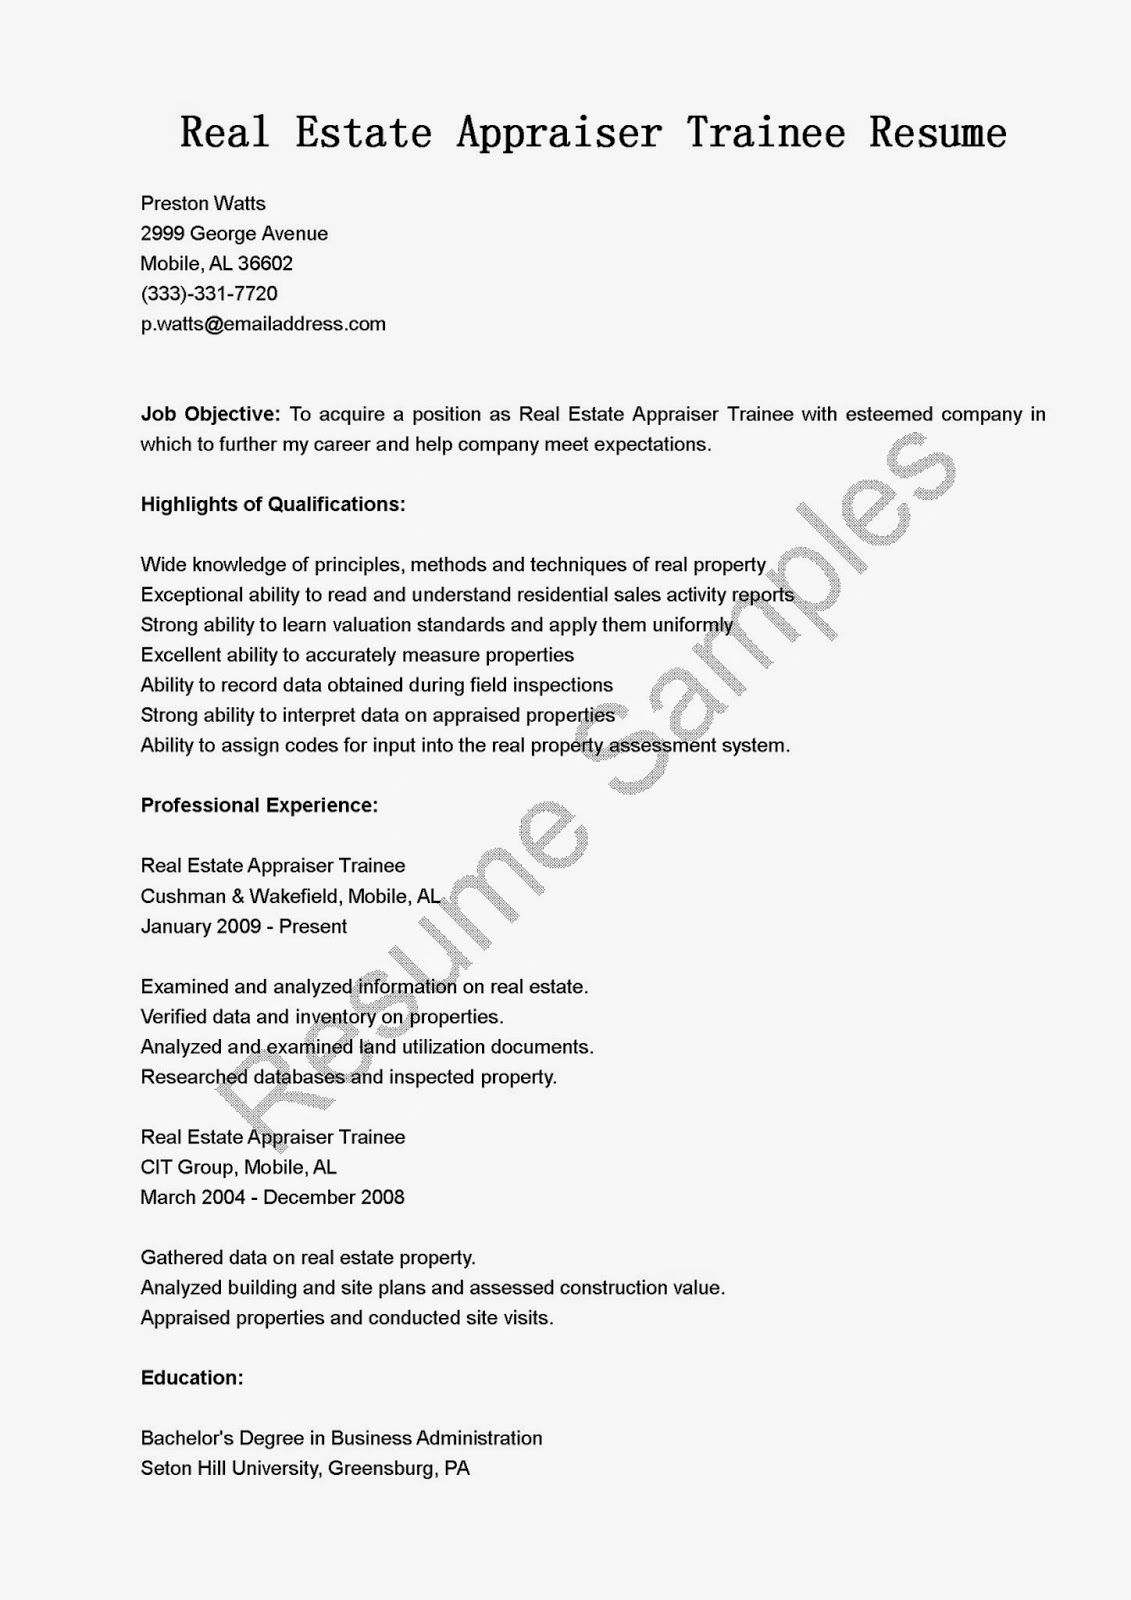 Superior Real Estate Appraiser Trainee Resume Sample |Resume Samples Throughout Real Estate Appraiser Resume